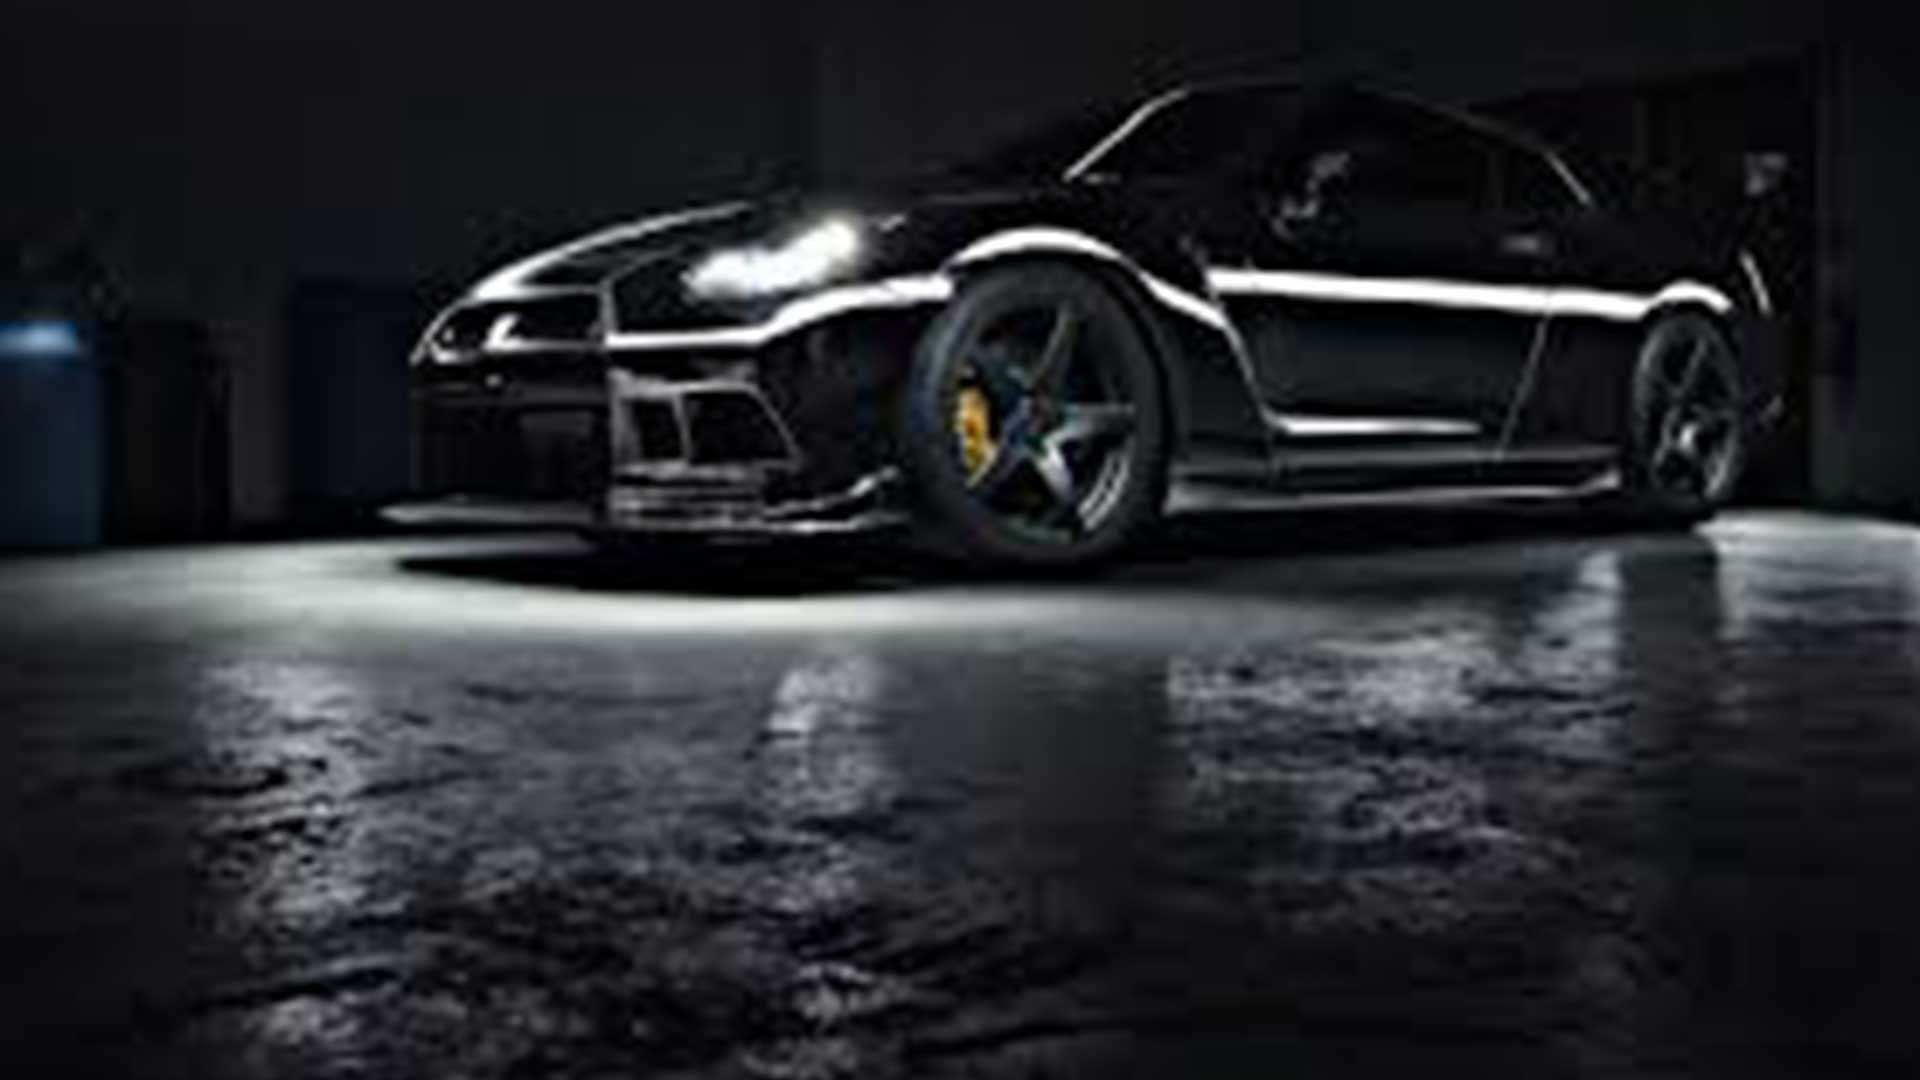 Chrome Wrapped Nissan GTR